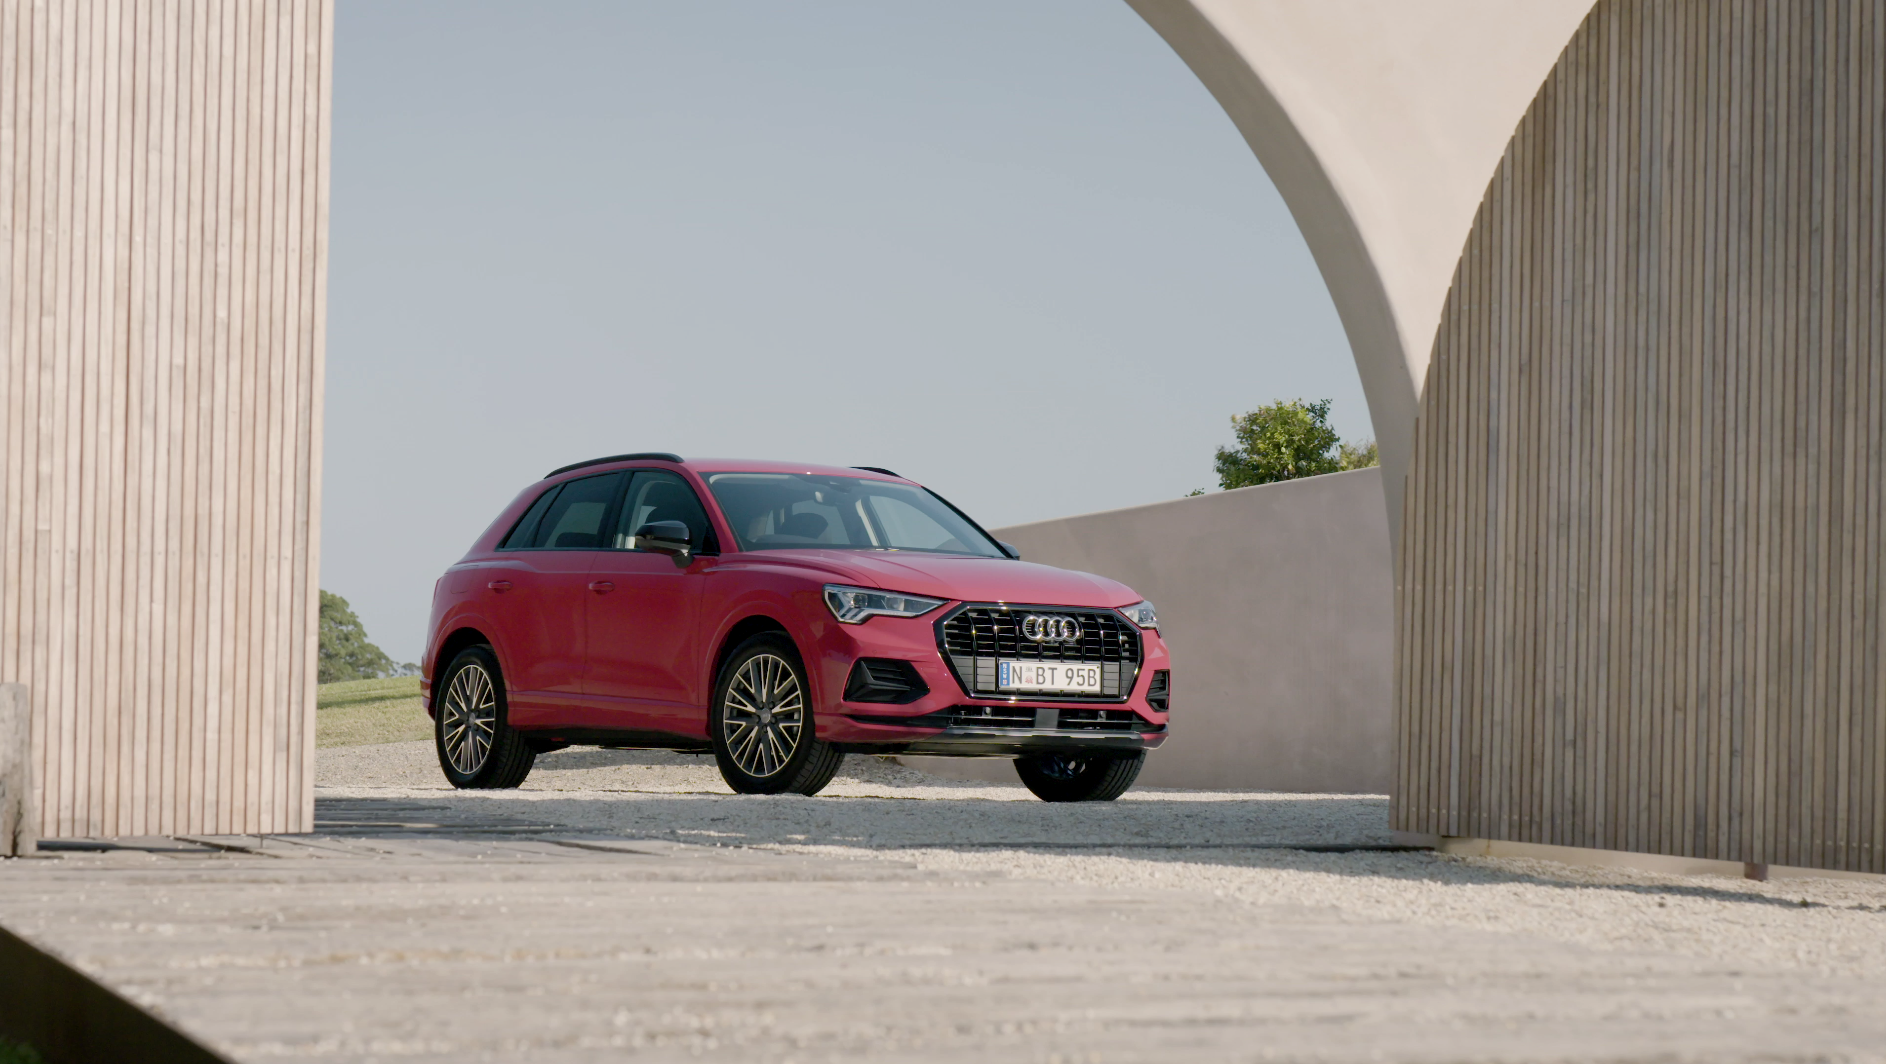 One of the most successful premium compact SUVs is returning in an all-new second-generation: the all-new Audi Q3 has arrived in Australia.